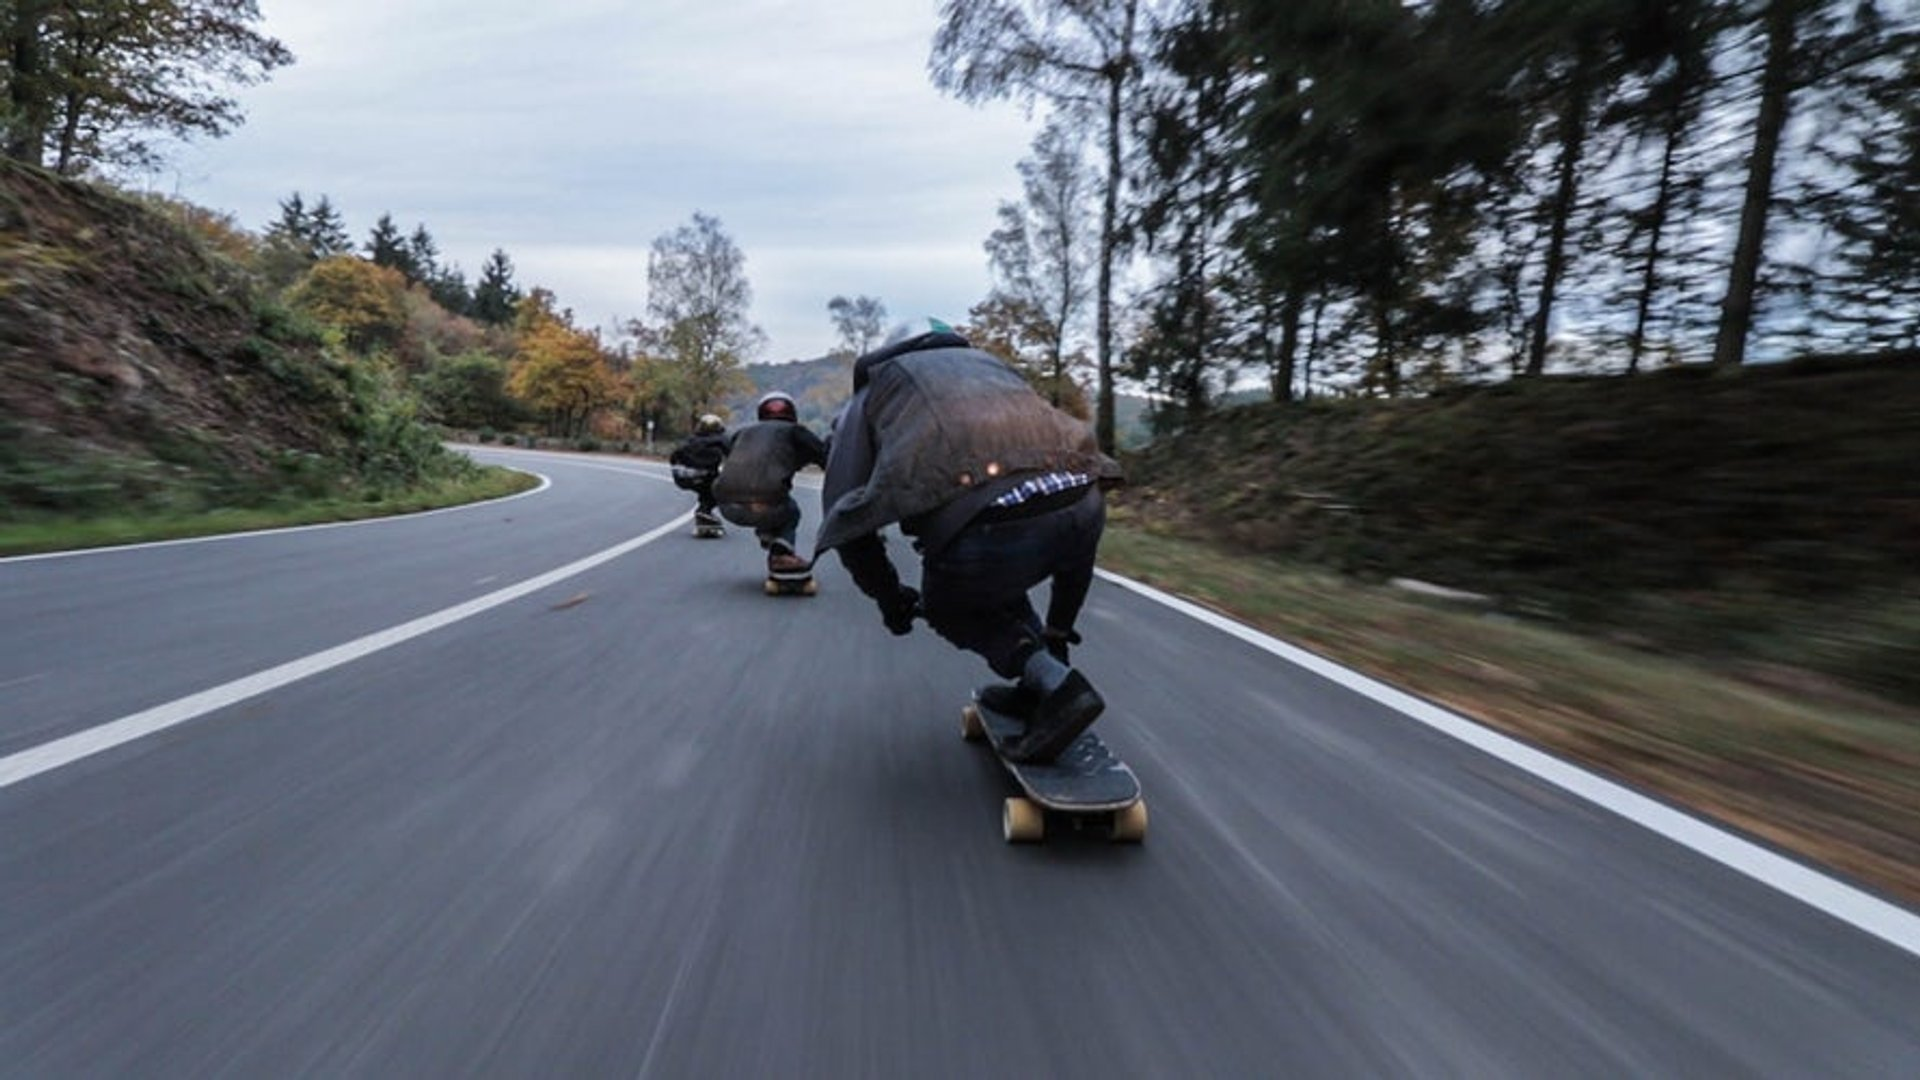 Longboarding in Norway - Best Season 2020